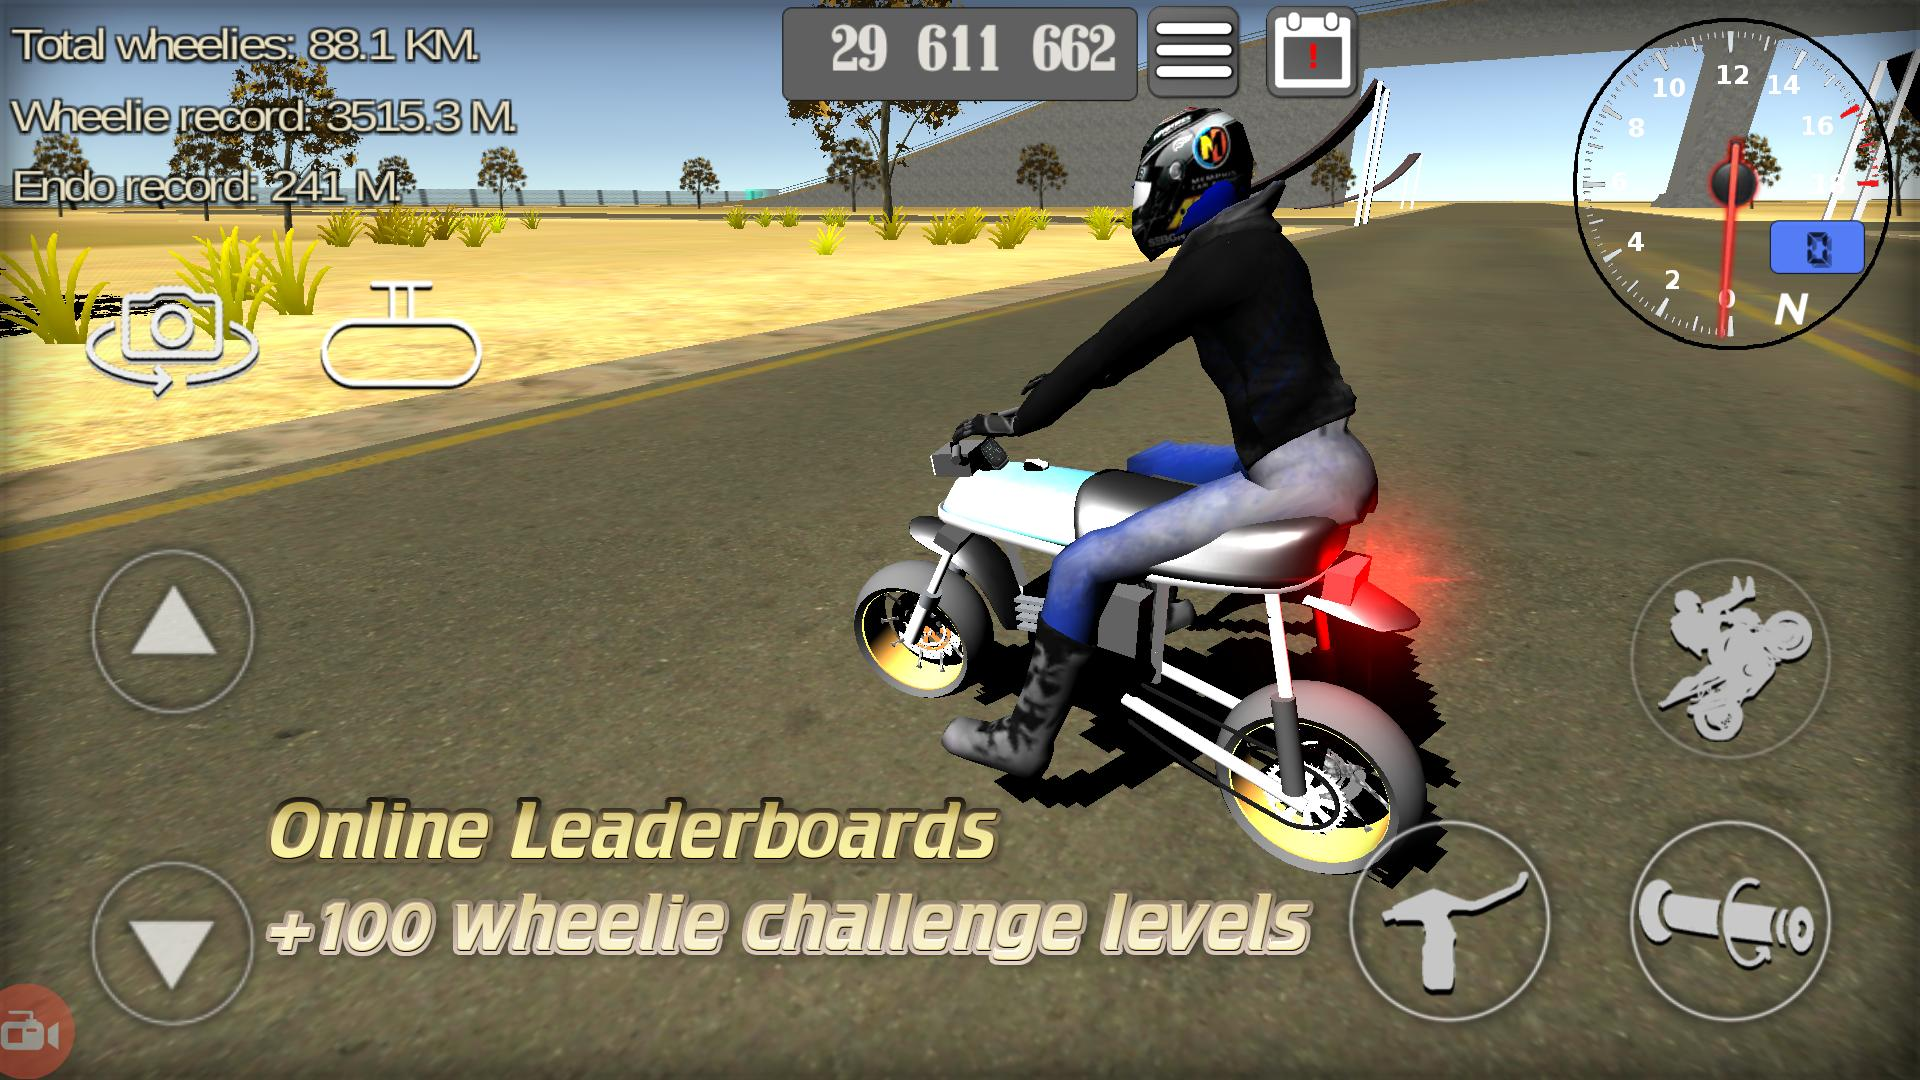 TÉLÉCHARGER WHEELIE CHALLENGE IPHONE